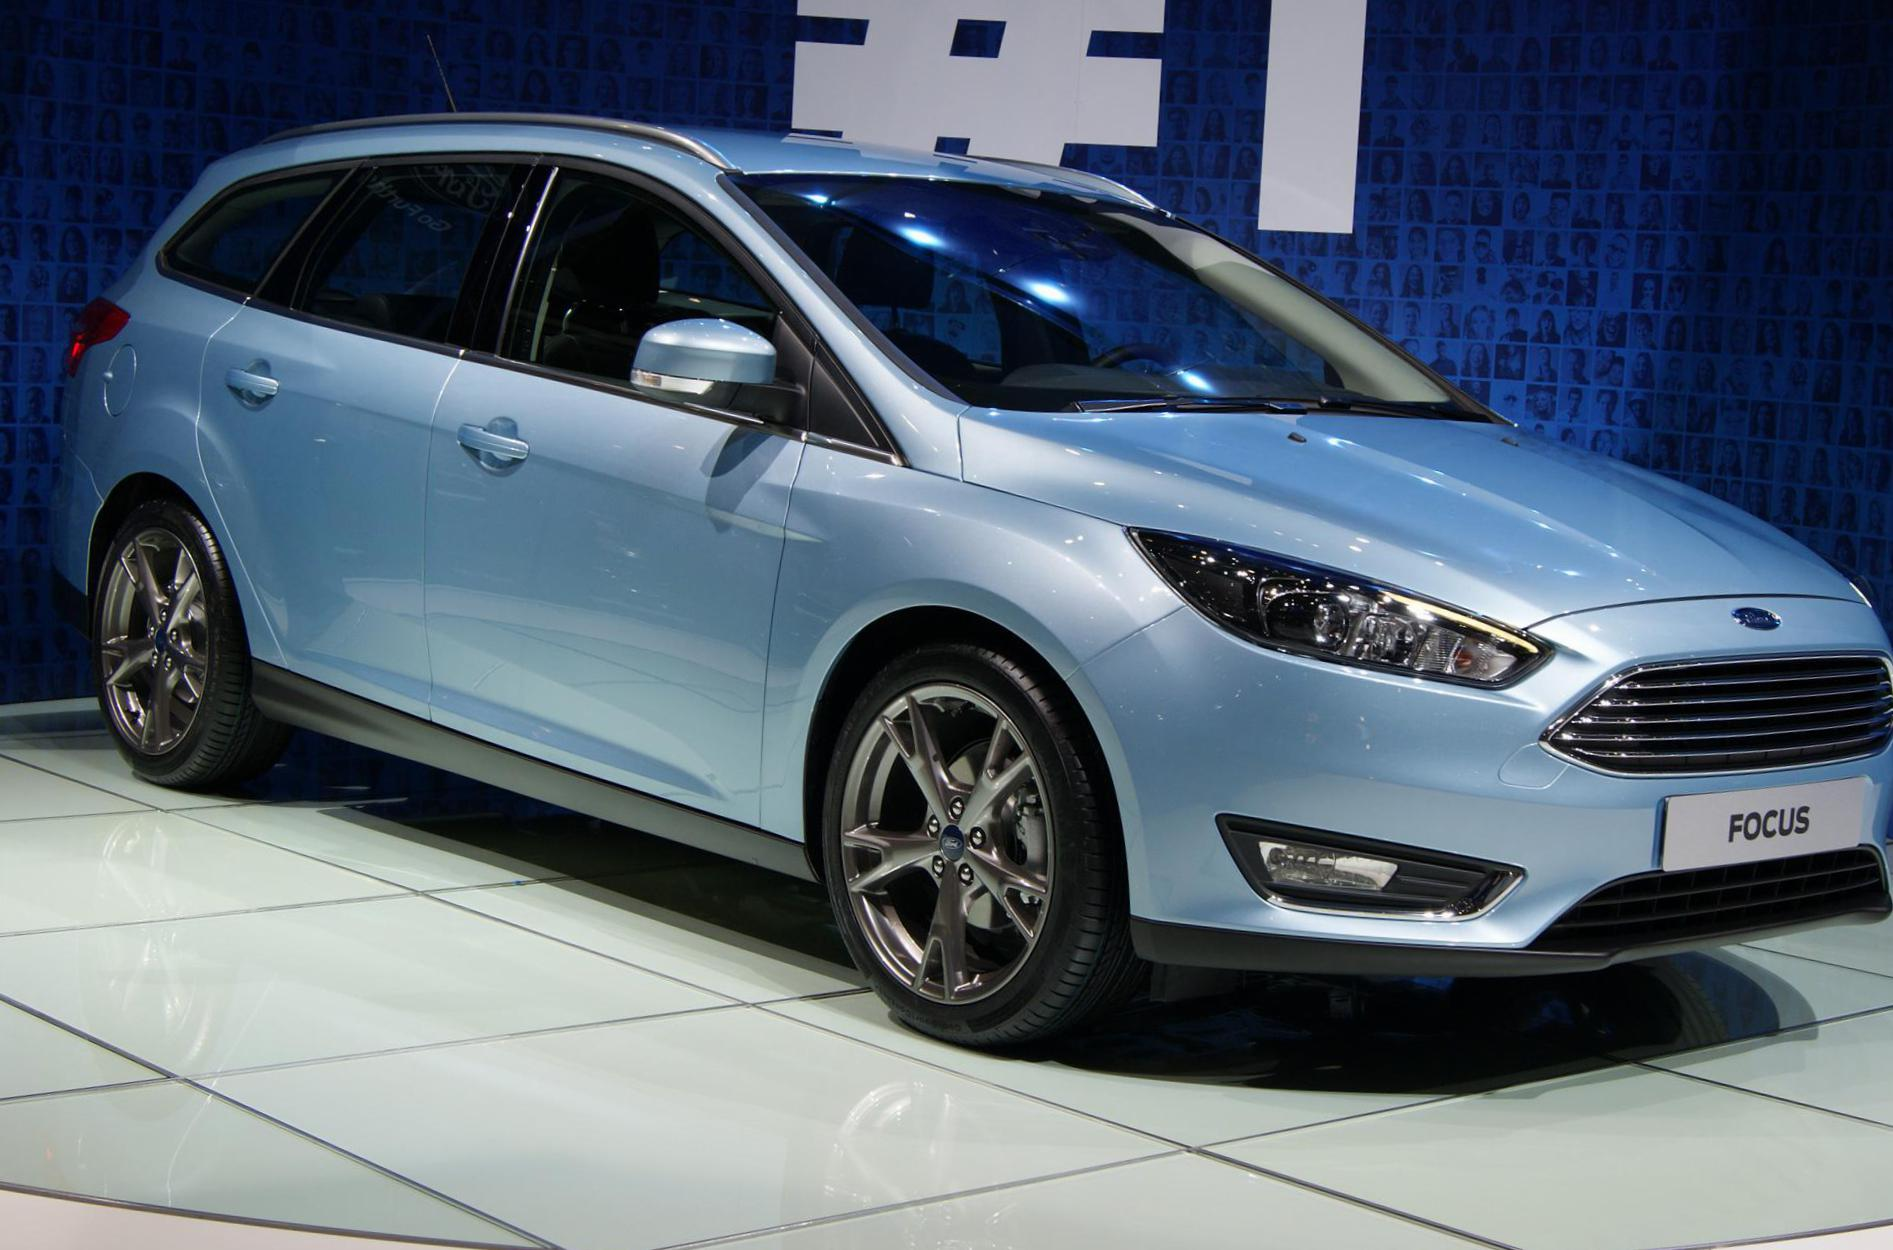 Ford Focus Wagon Photos And Specs Photo Focus Wagon Ford Models